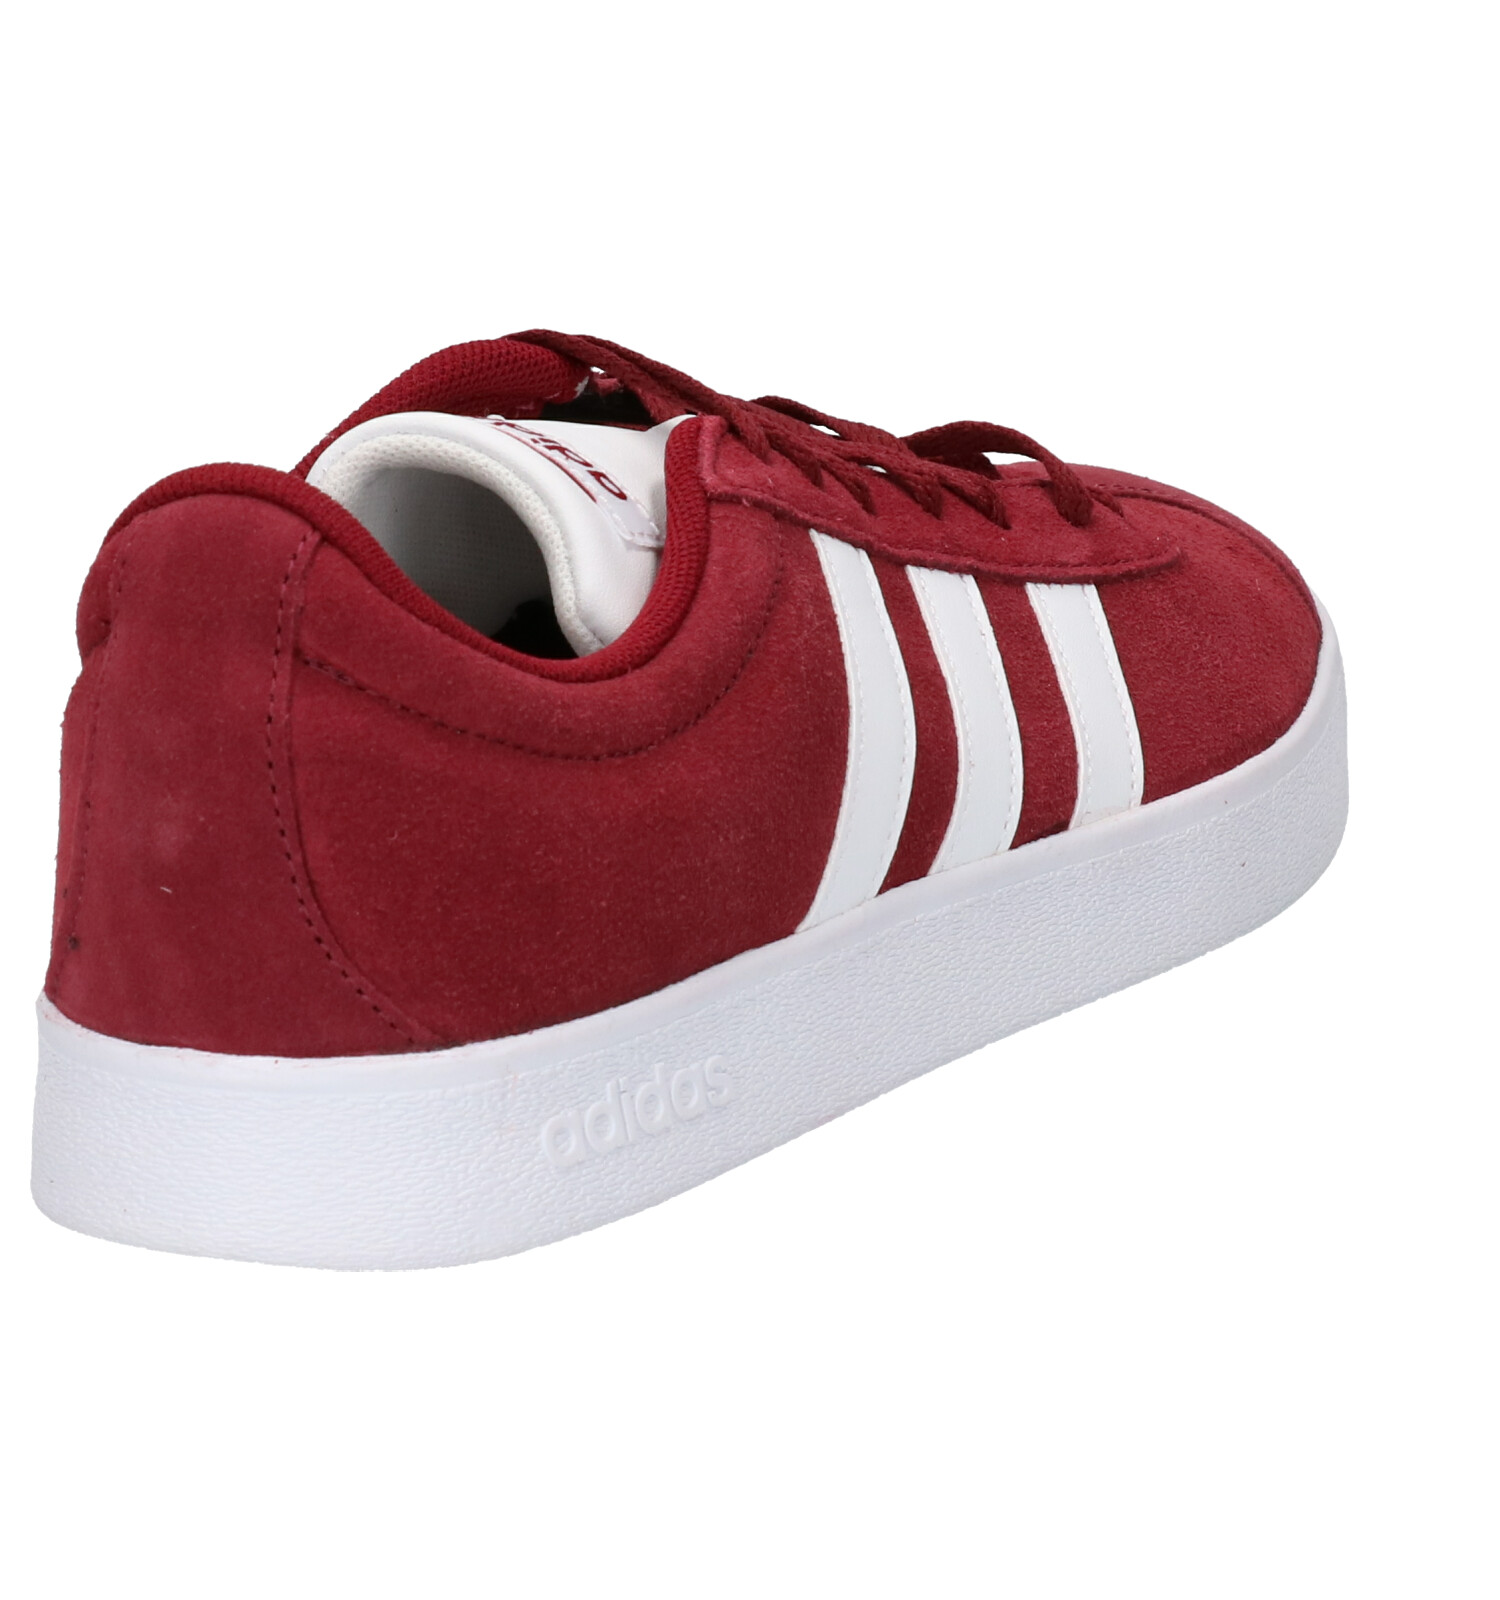 Sneakers 0 Bordeaux Vl Court 2 Adidas OPk0nw